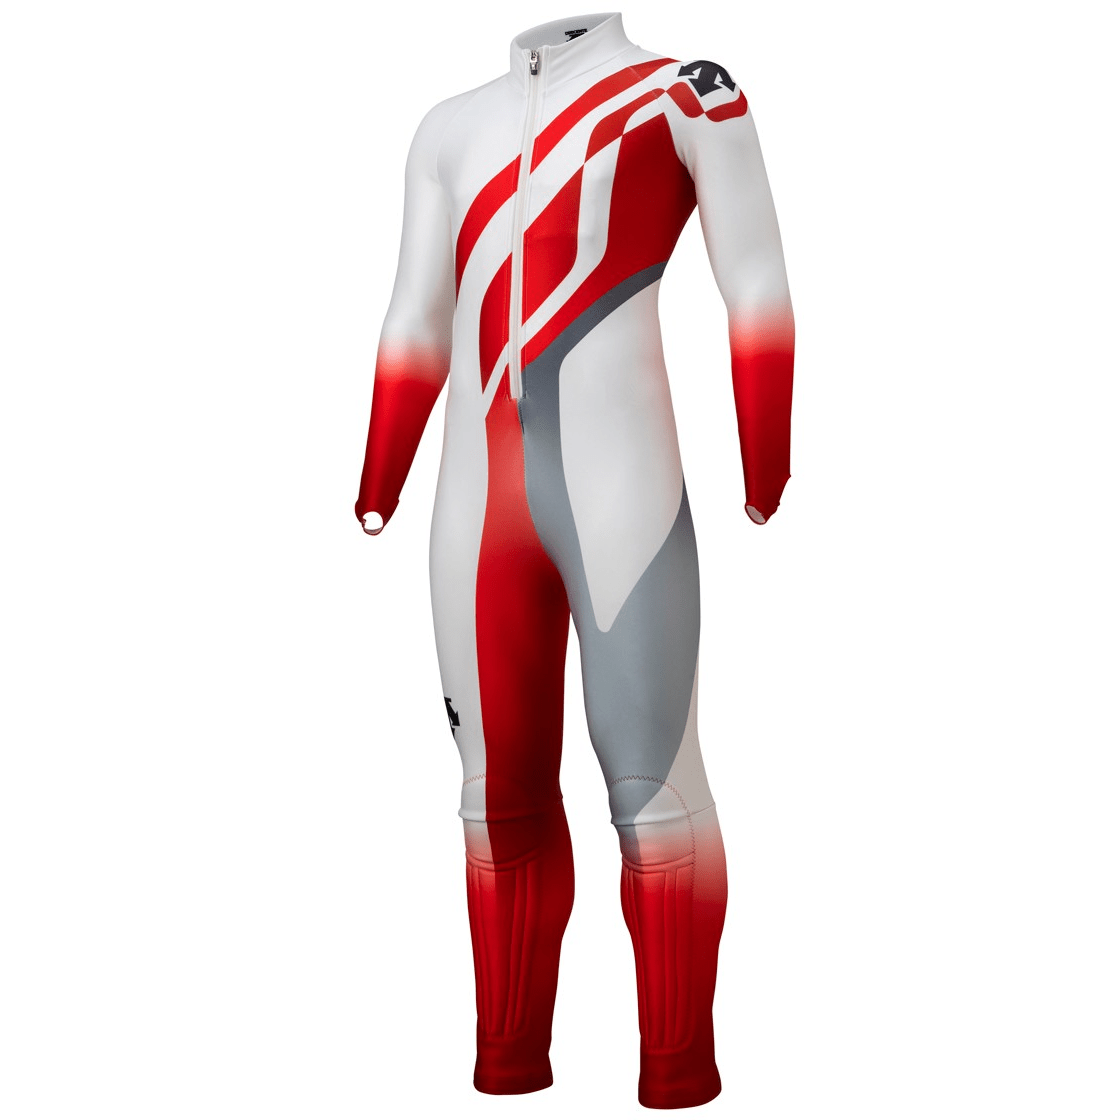 GIANT SLALOM RACE SUITS (Without pad)